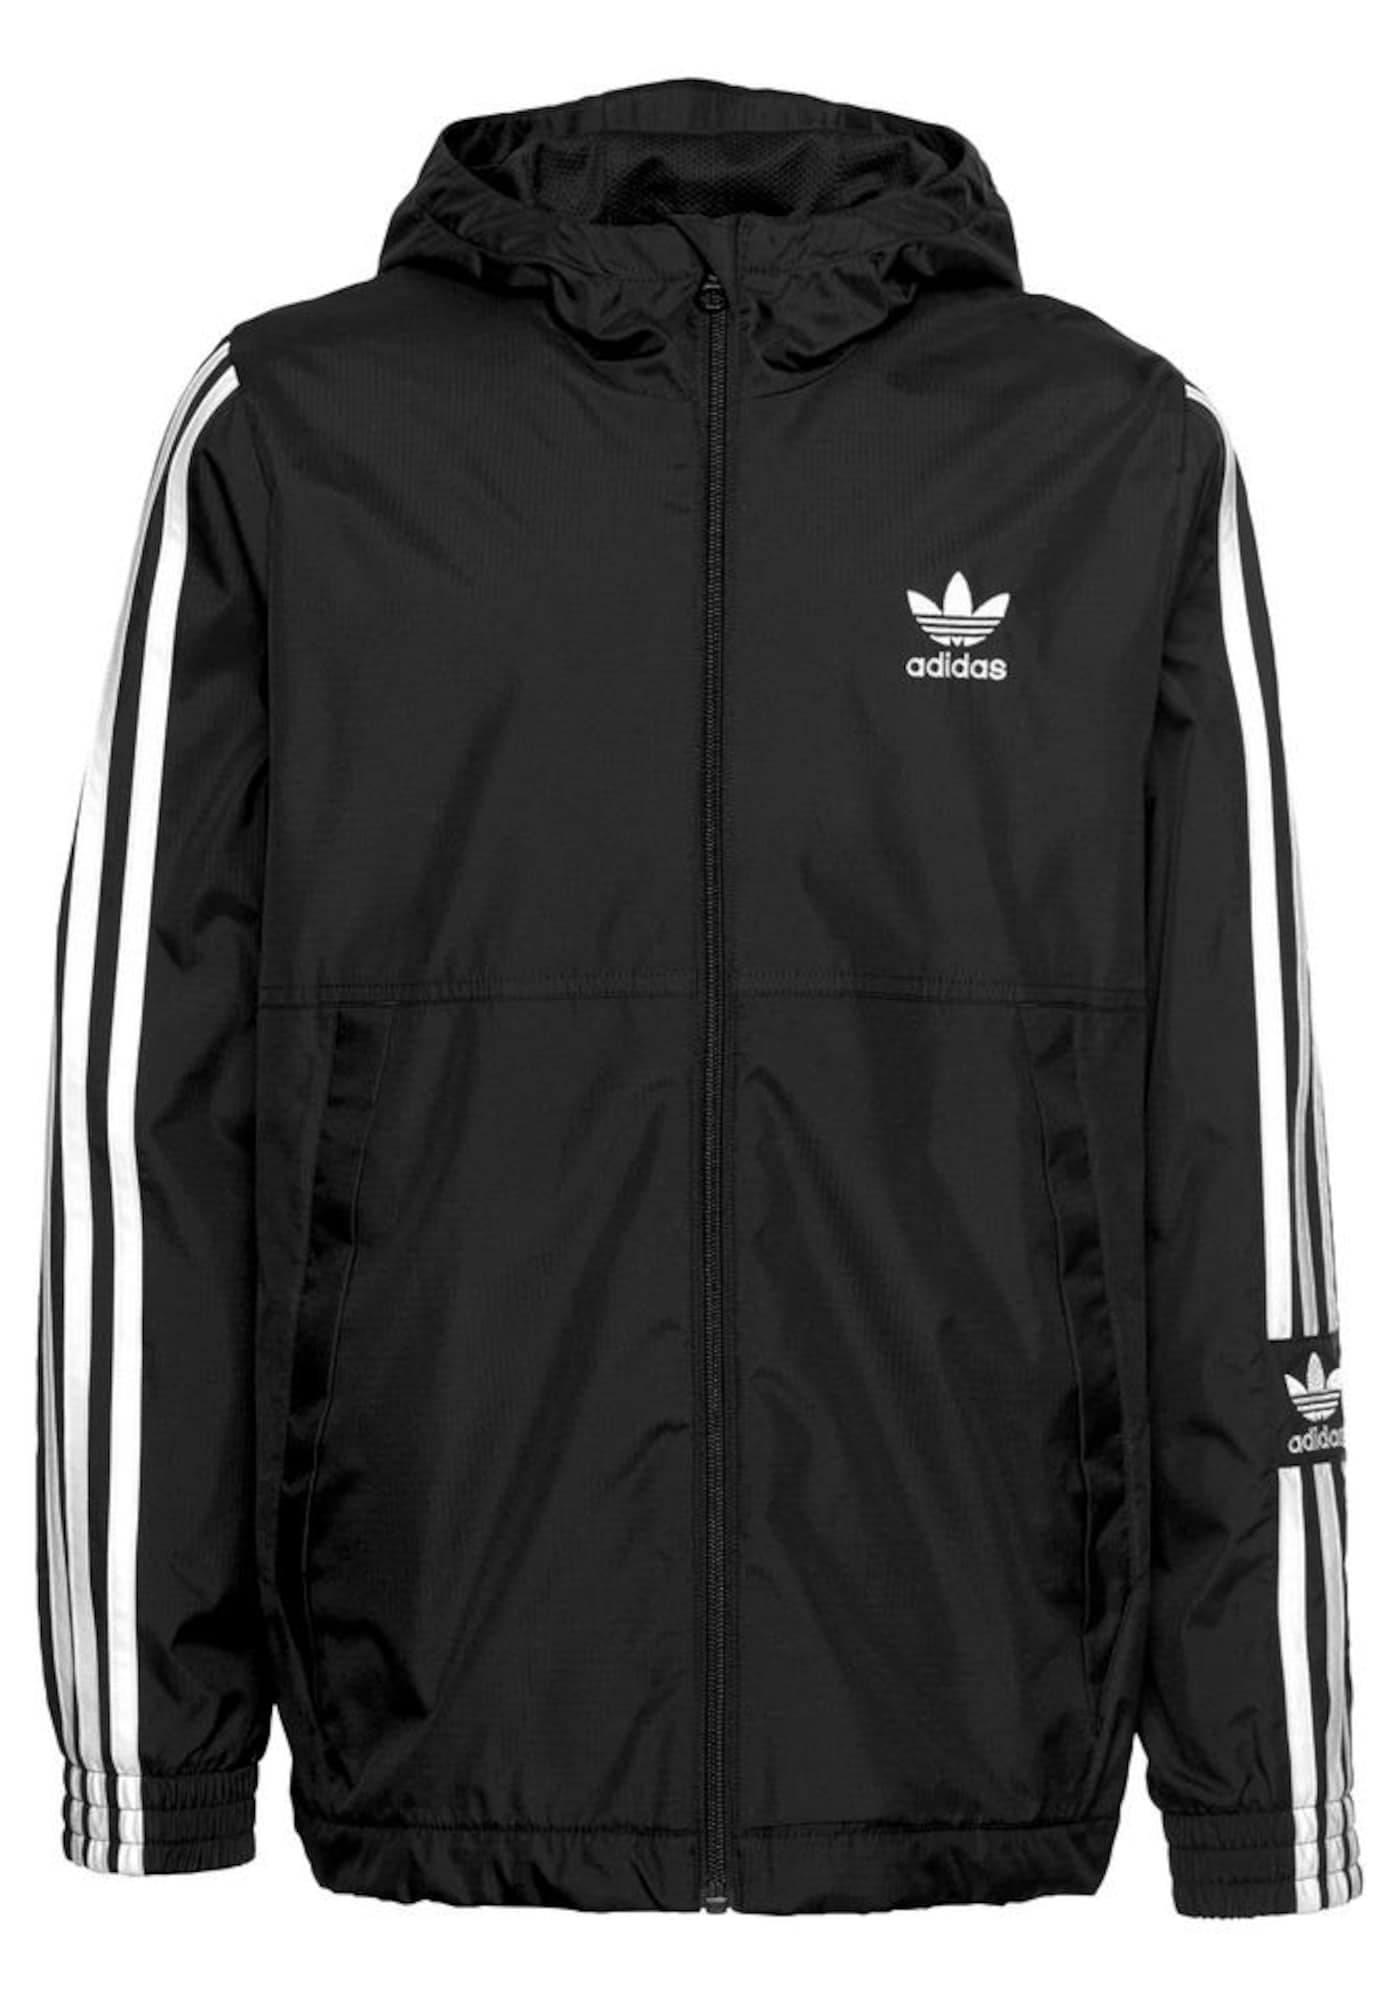 ADIDAS ORIGINALS Demisezoninė striukė 'Lock Up Windbreaker' balta / juoda